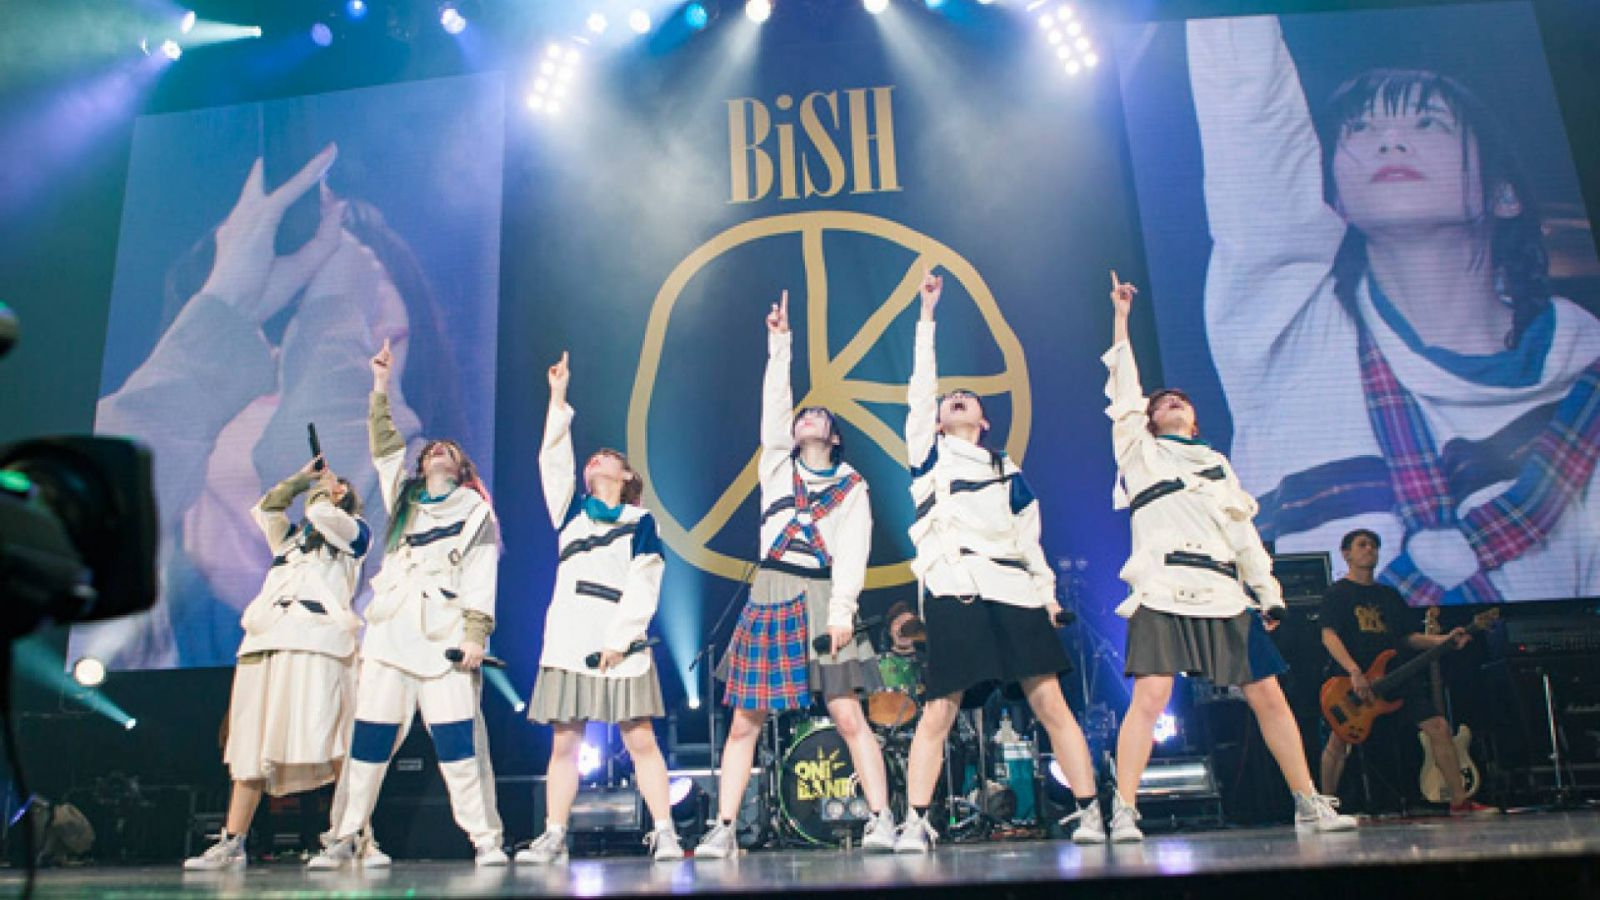 J-review : BiSH © avex music creative inc. All rights reserved.